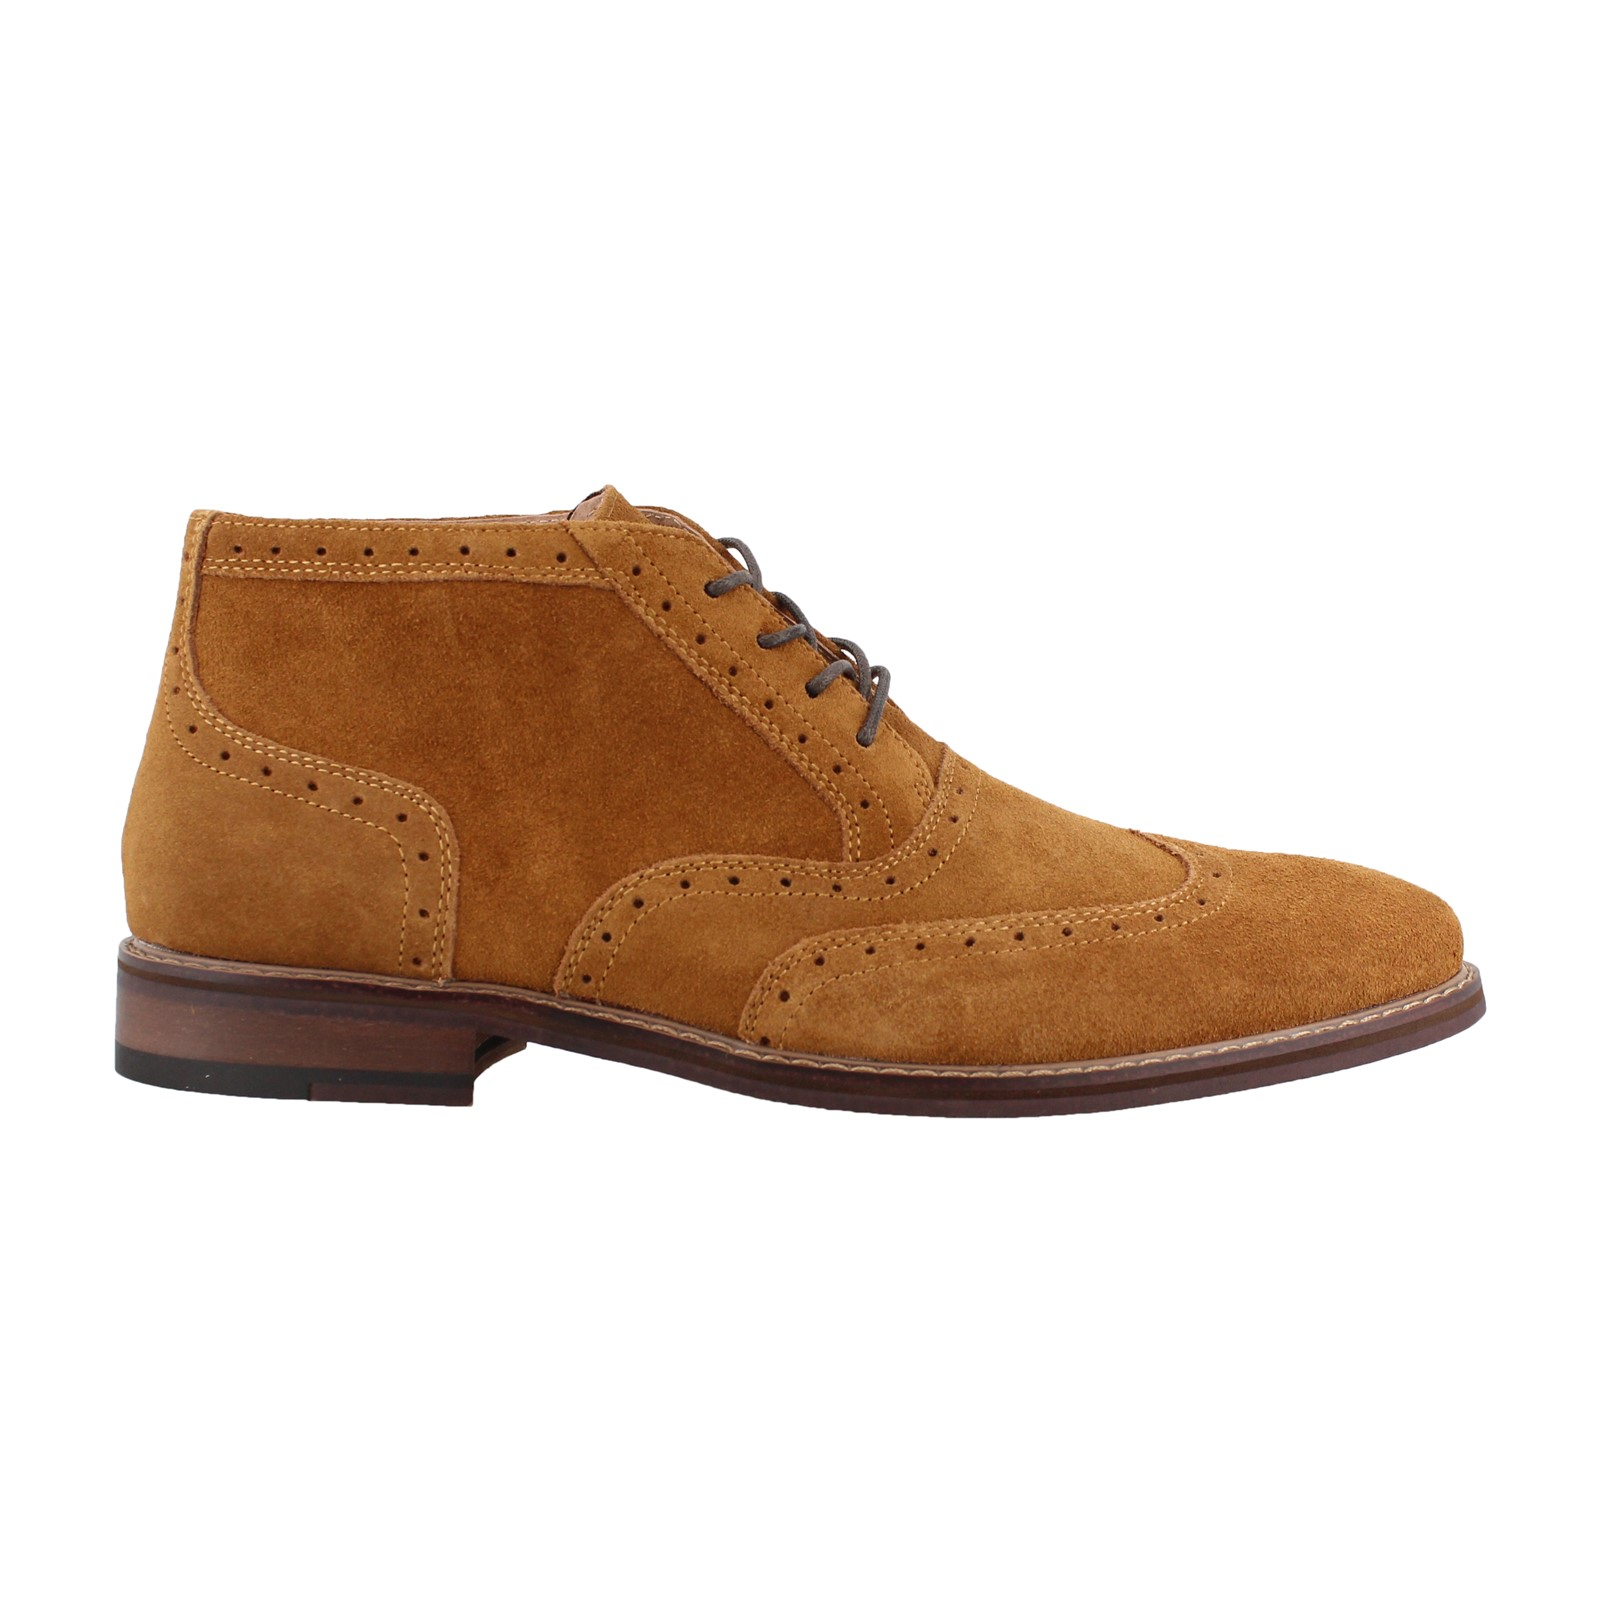 Men's Stacy Adams, Arley Chukka Boots